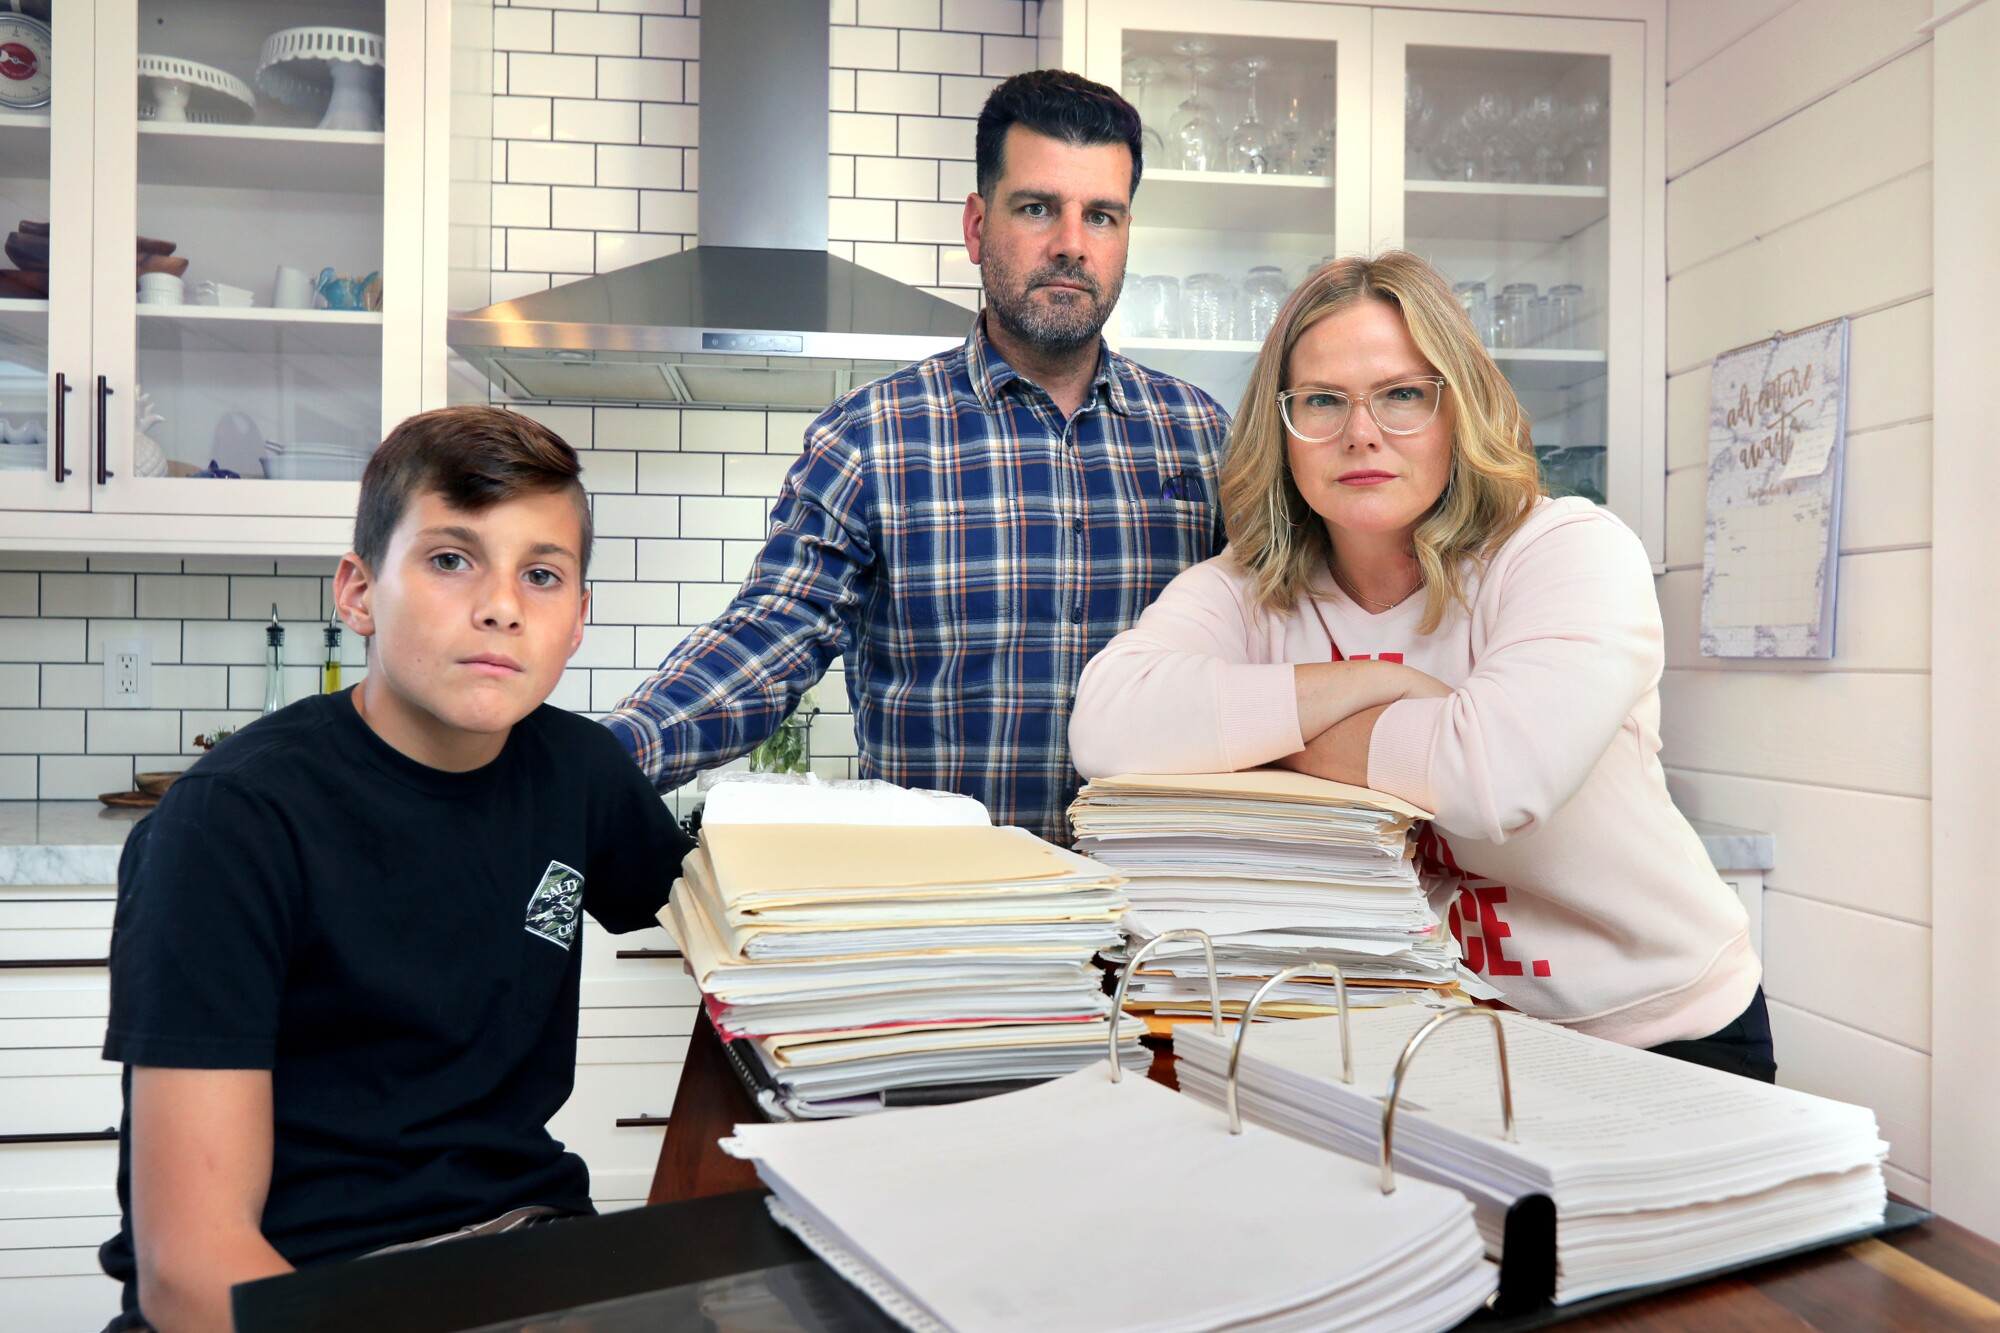 Diego Lazaro, 12, and his parents Oscar and Melissa Lazaro with all of the paperwork they've accumulated in their years-long effort to get Diego the education they feel he deserves with his dyslexia.